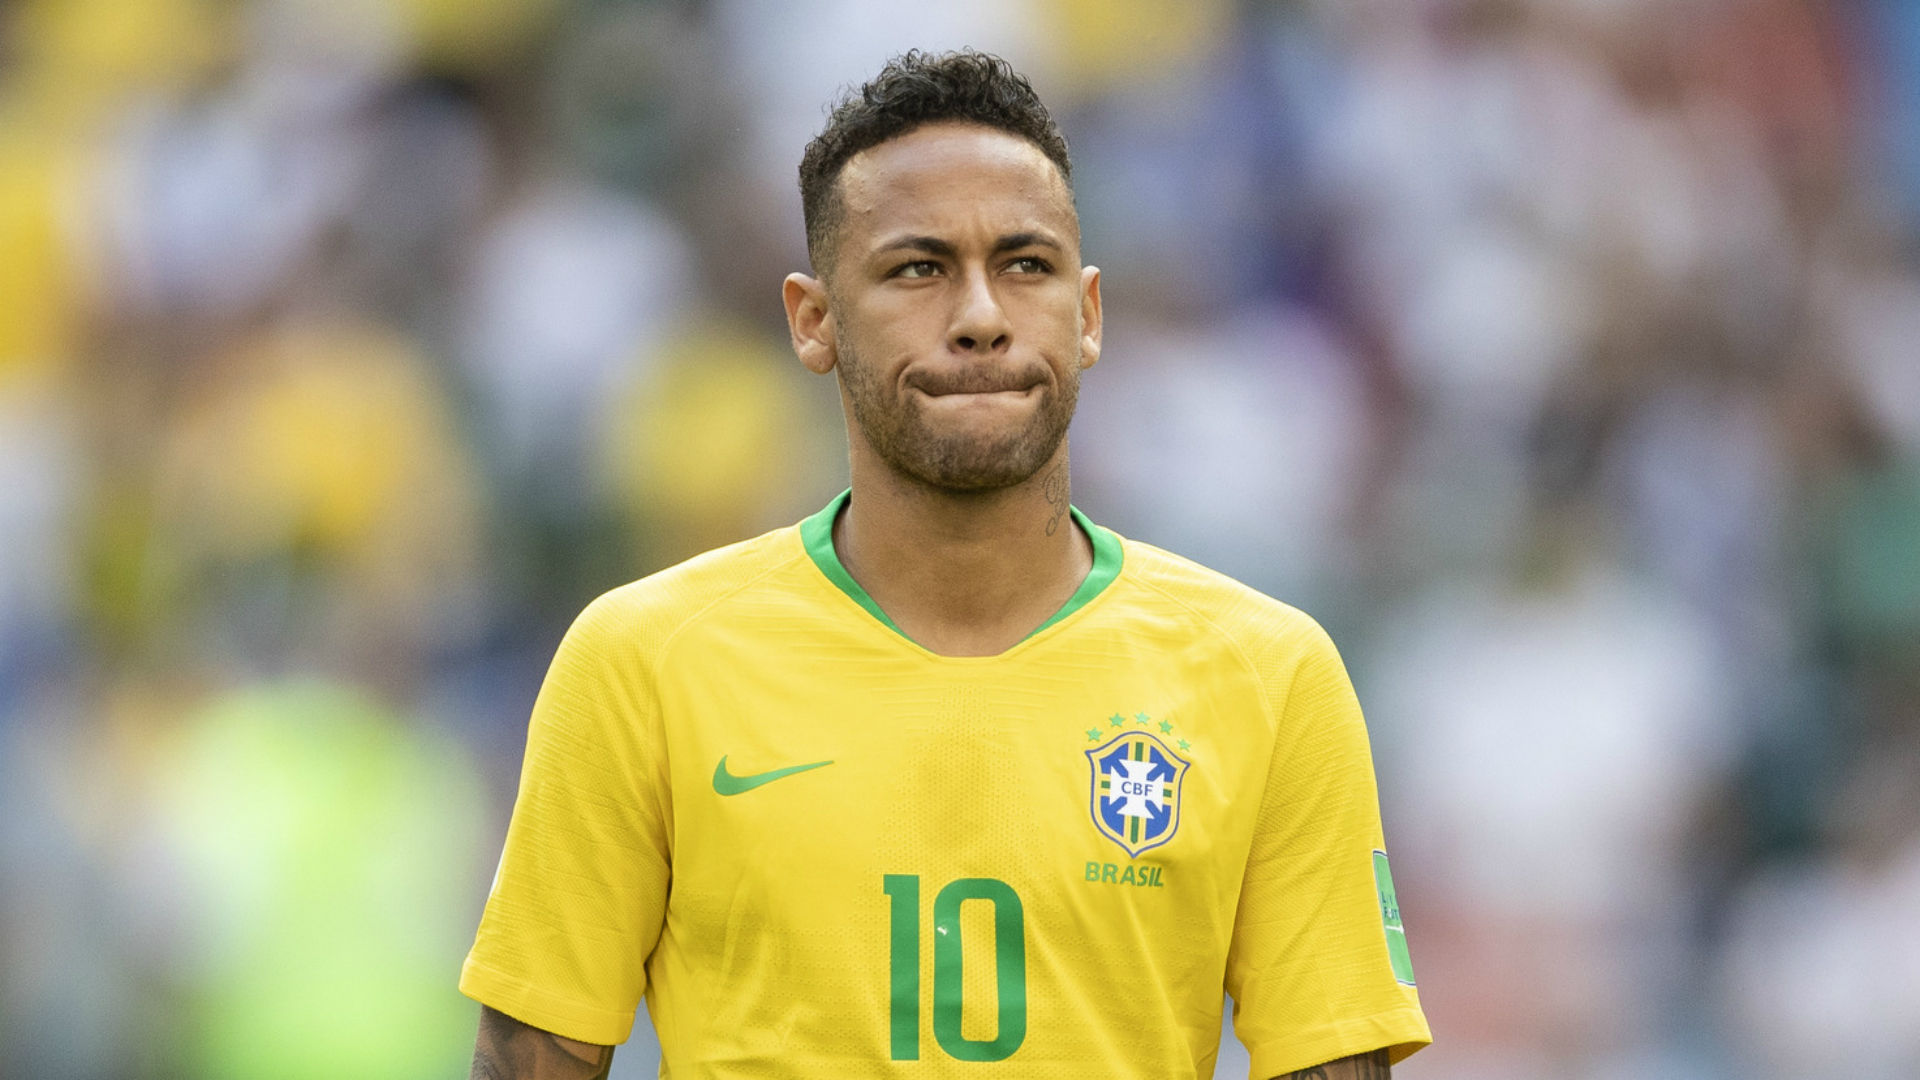 We have to learn to suffer, says Neymar